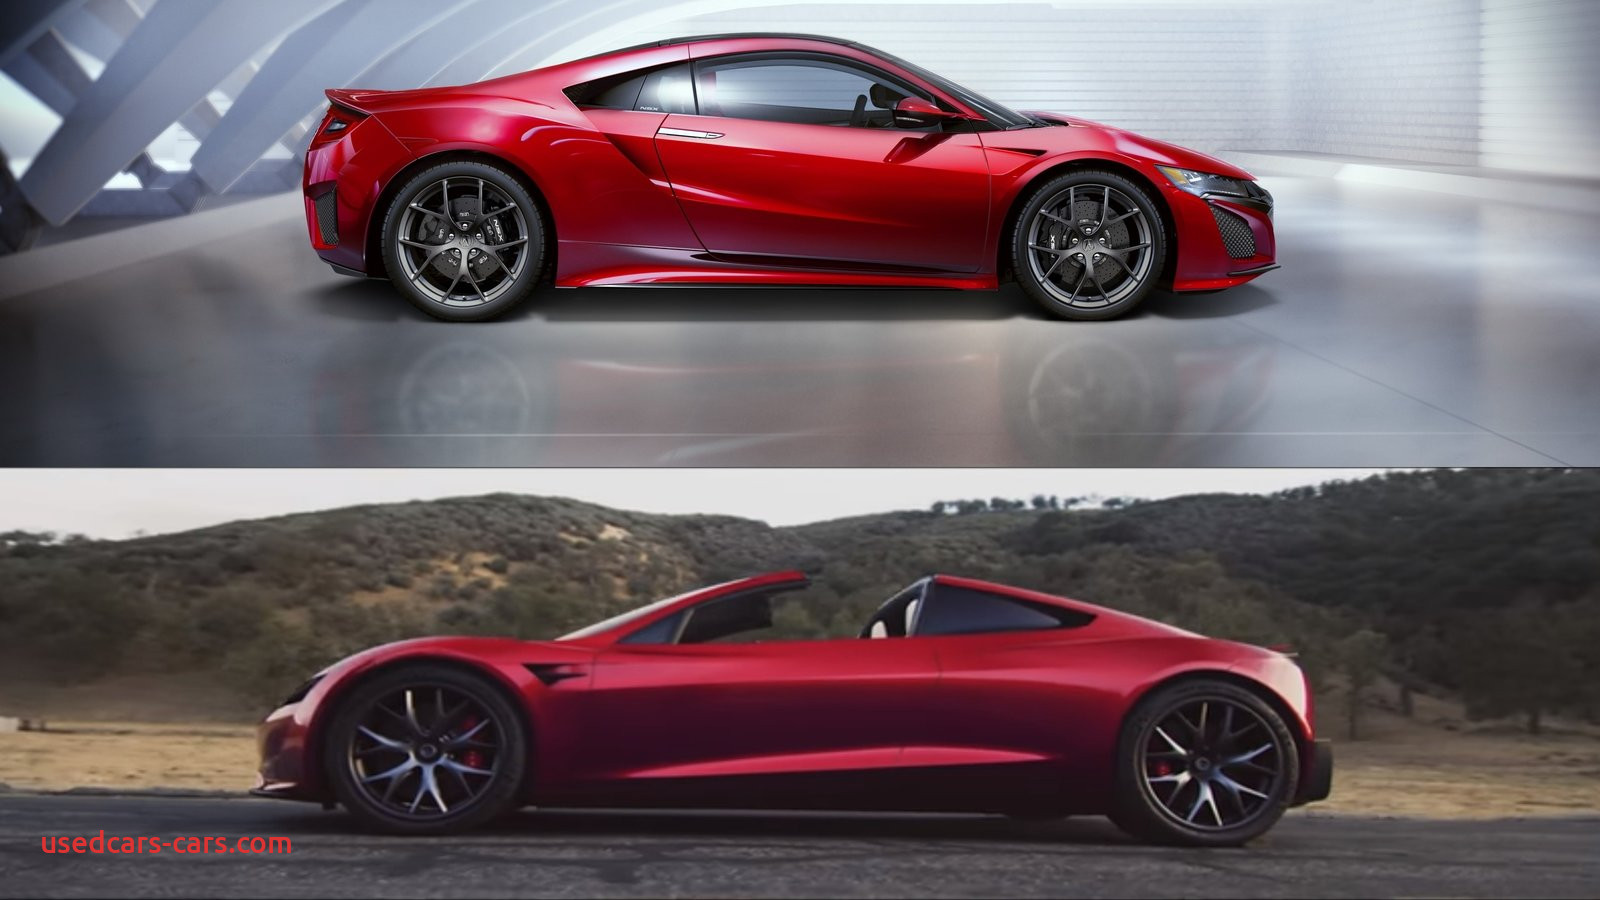 Where Tesla Car From Beautiful the Tesla Roadster Looks Like A Blurry Version Of the